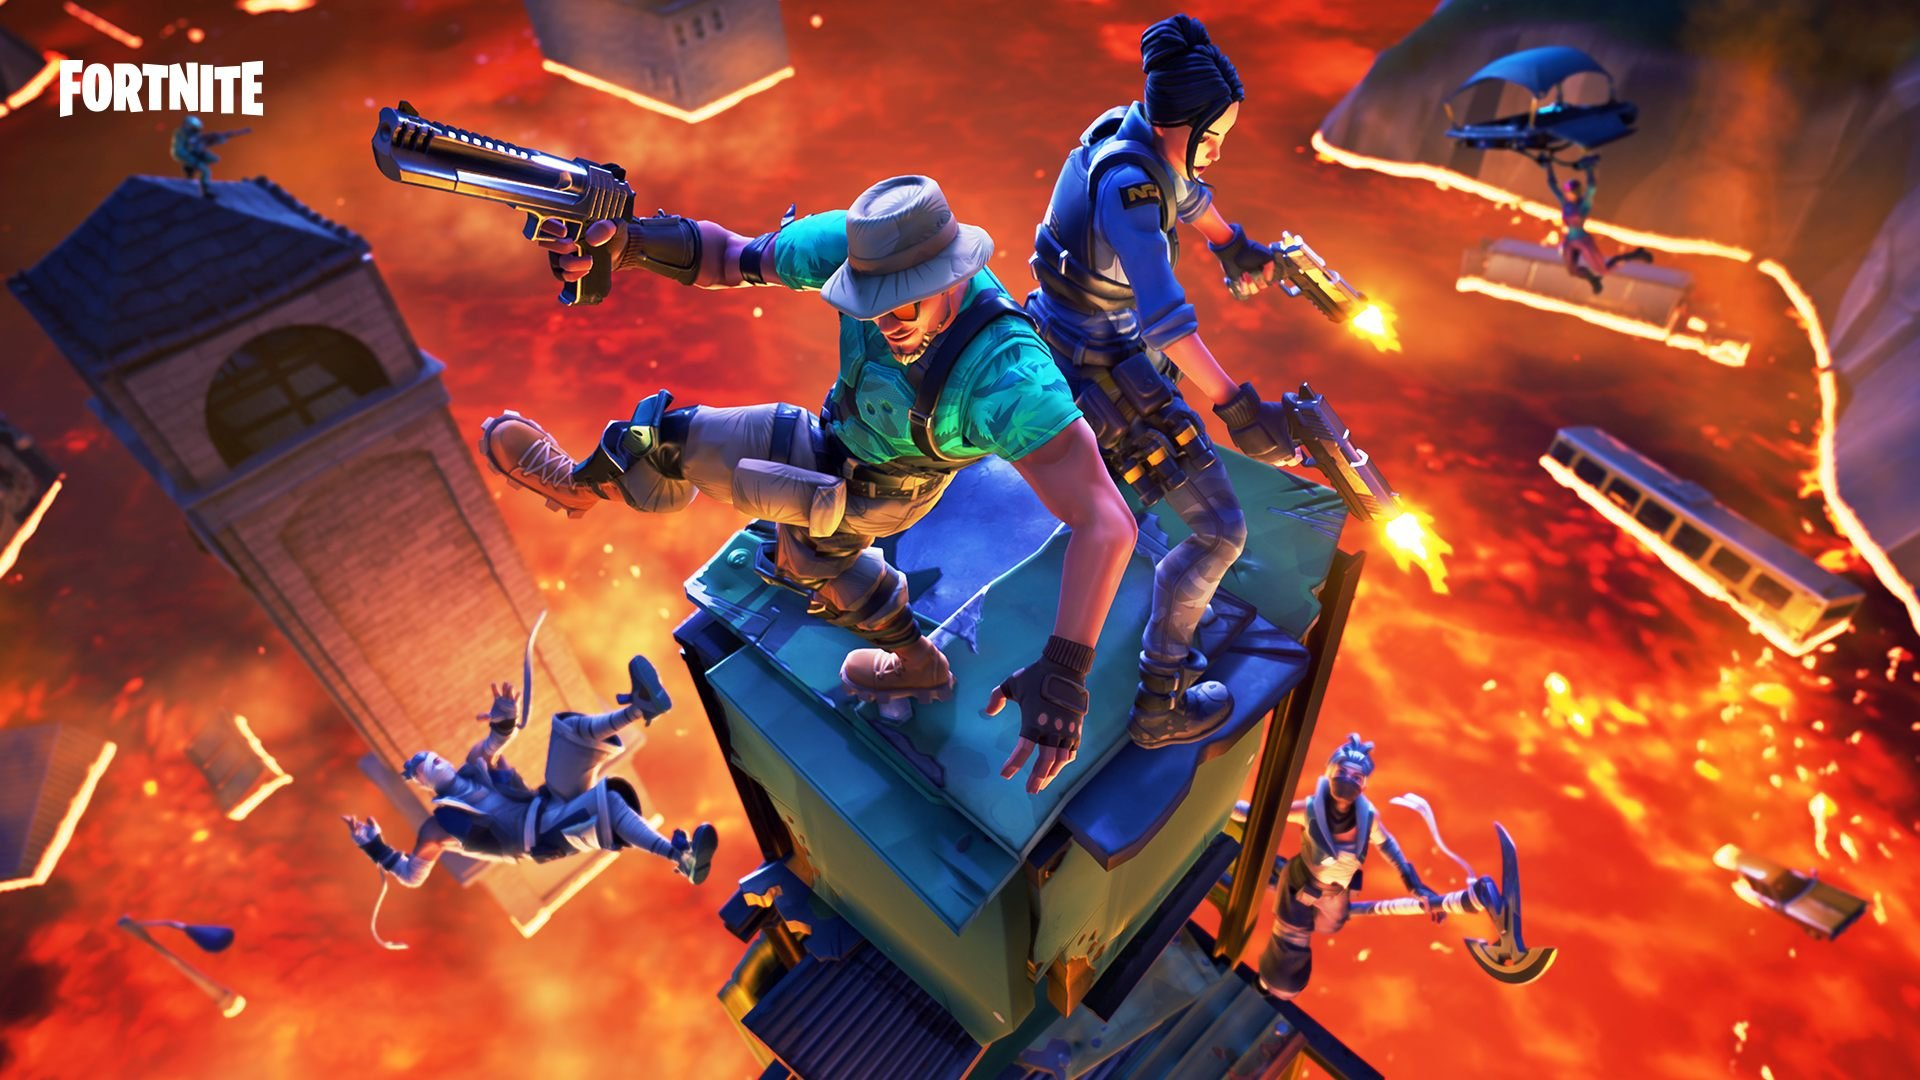 Fortnite v8.20.1 patch notes update fix details